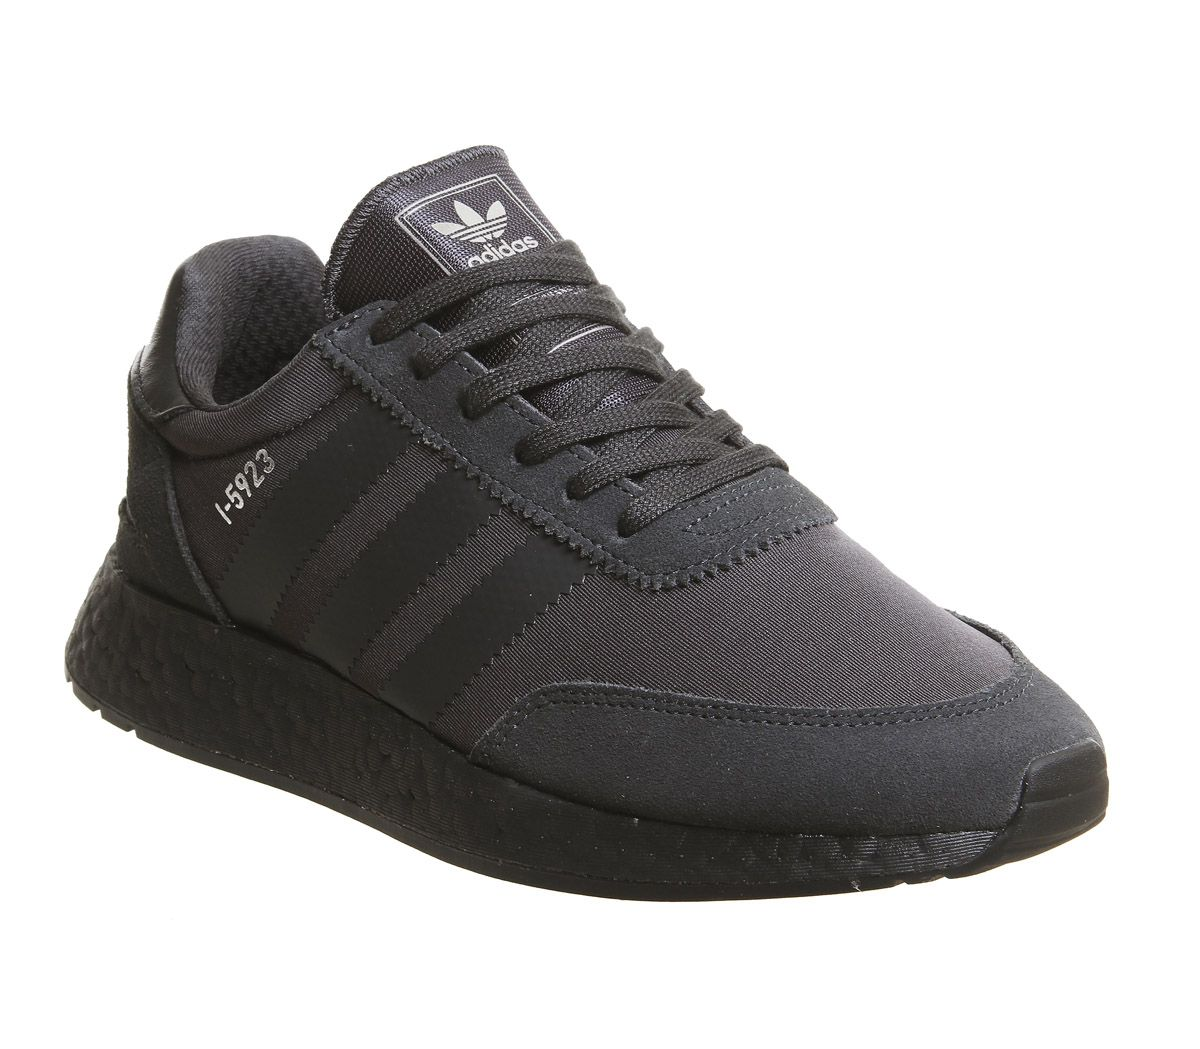 498536e80cbf adidas I-5923 Trainers Carbon Core Black - Hers trainers